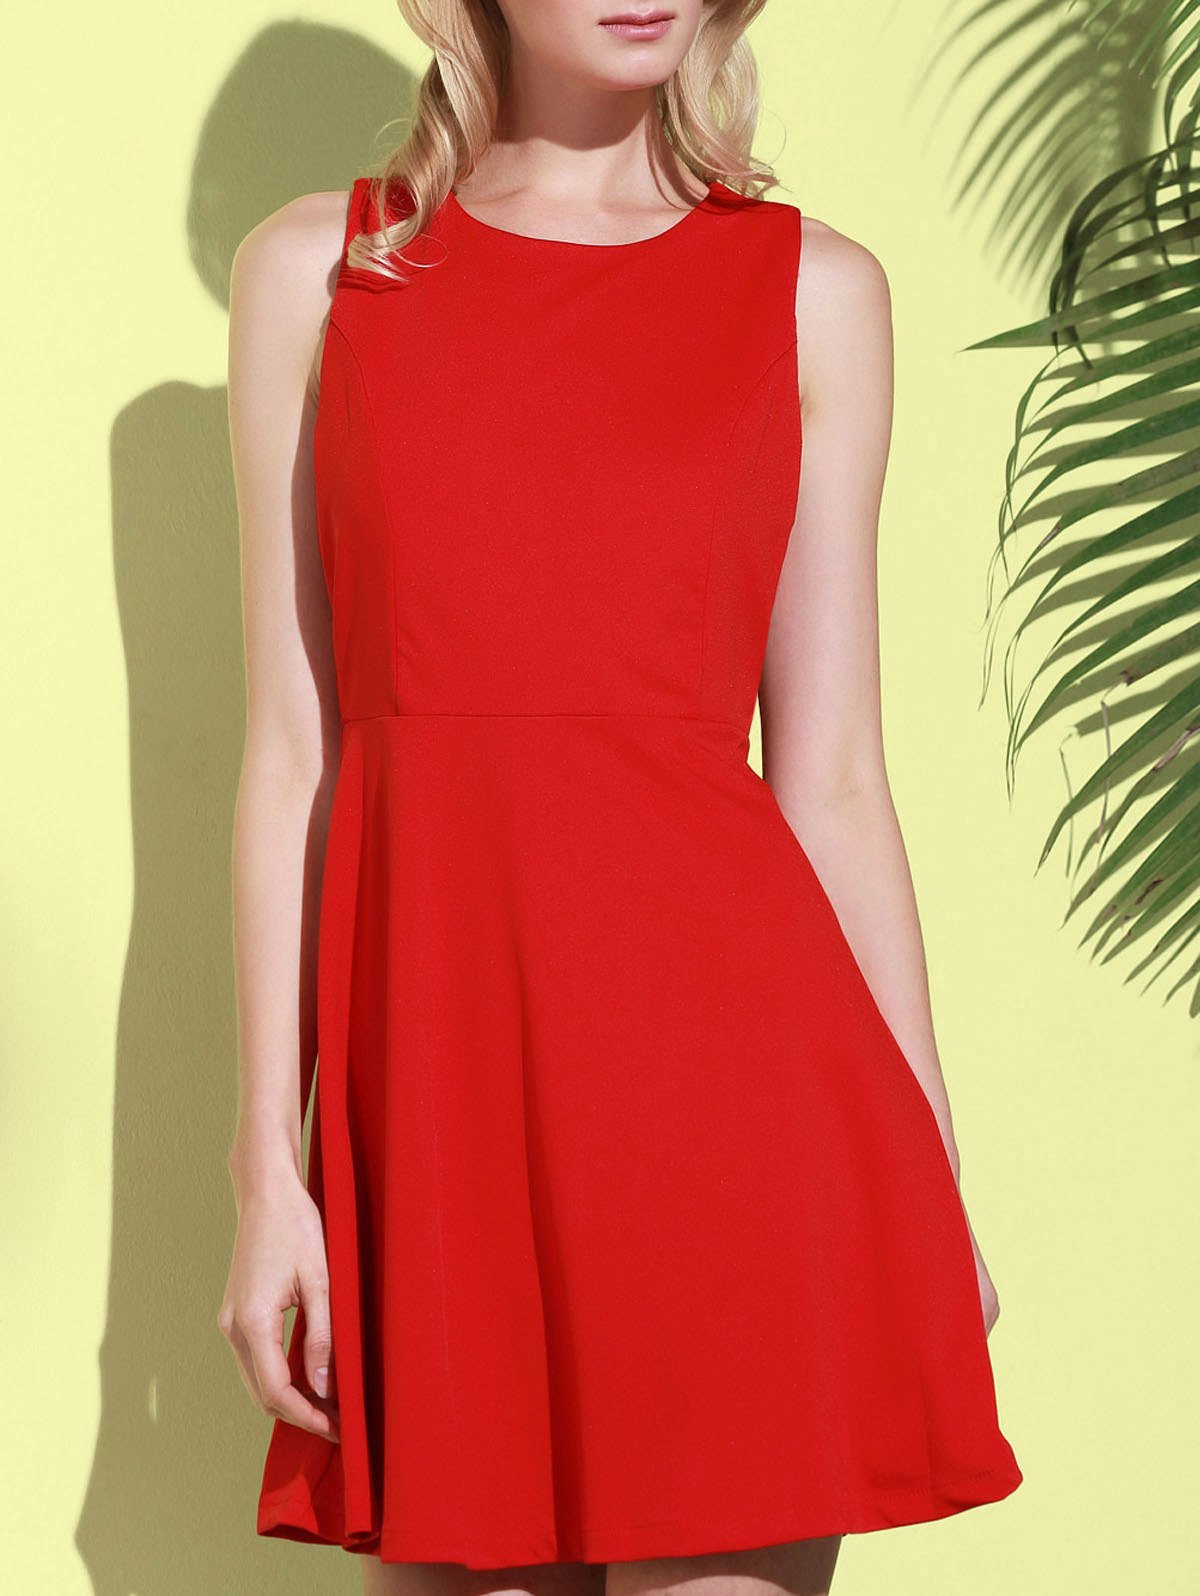 Trendy Stylish Round Collar Sleeveless A-Line Dress For Women